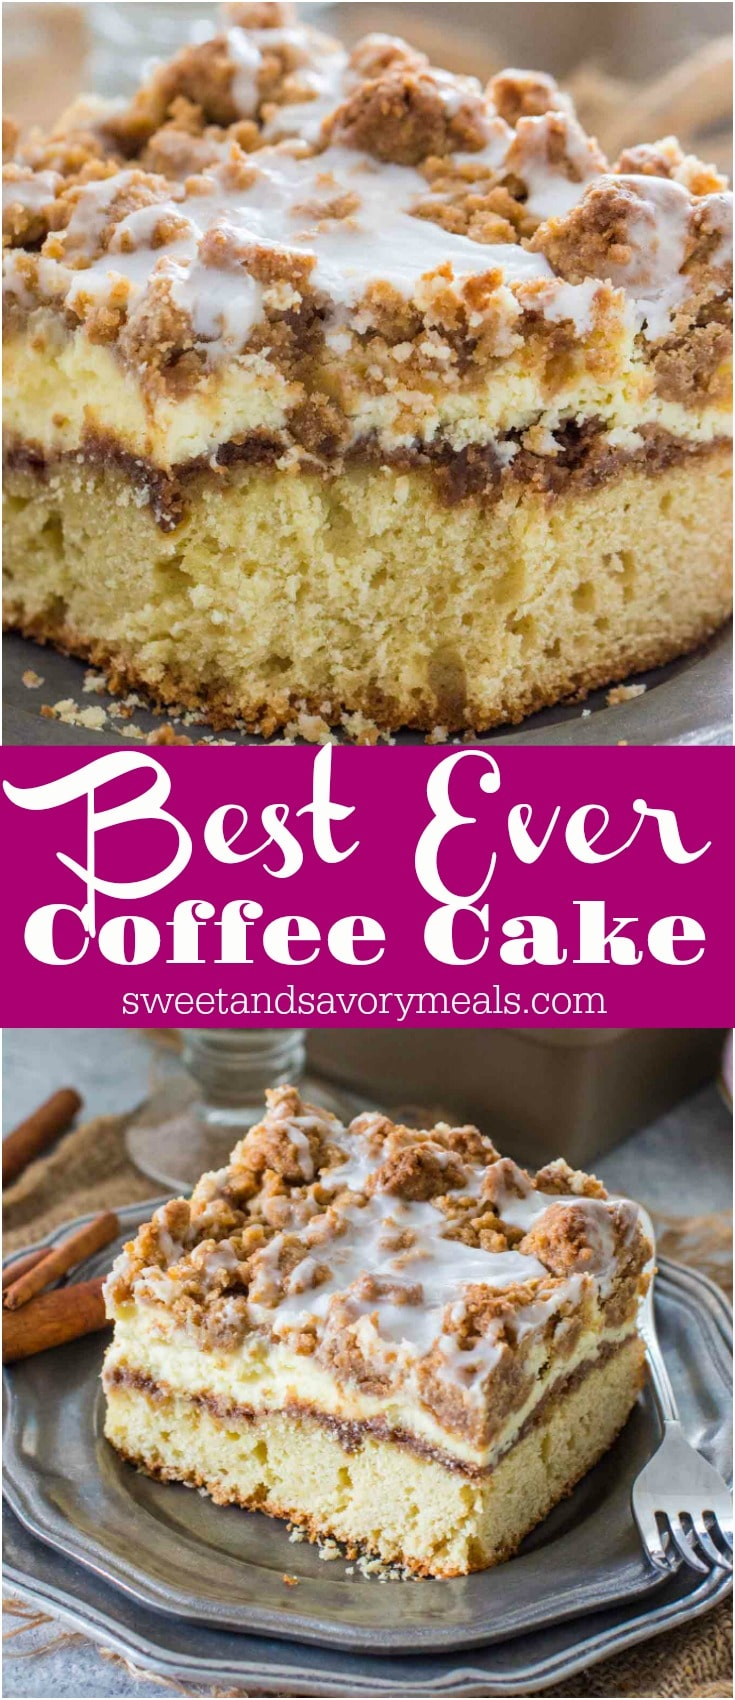 image of best ever coffee cake with cinnamon filling for pinterest